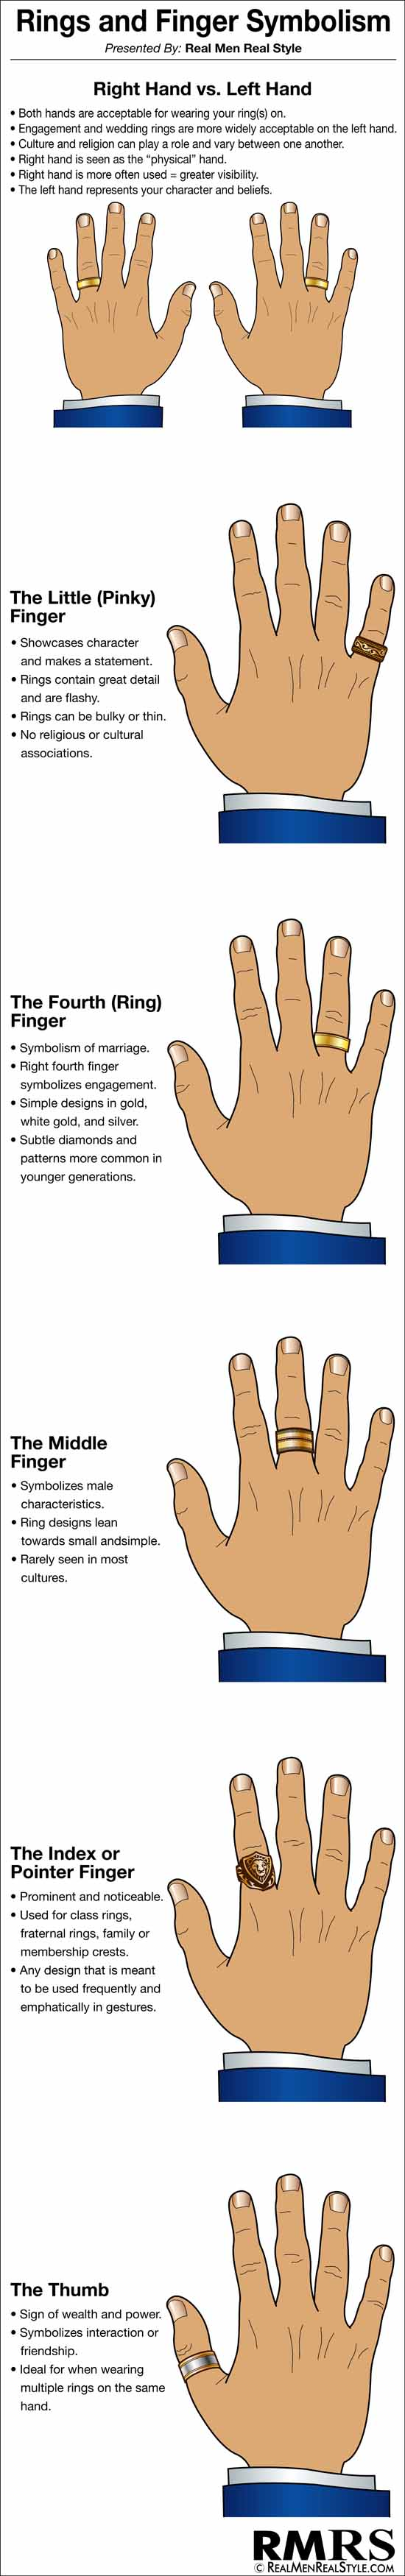 Thumb Ring On Men Meaning